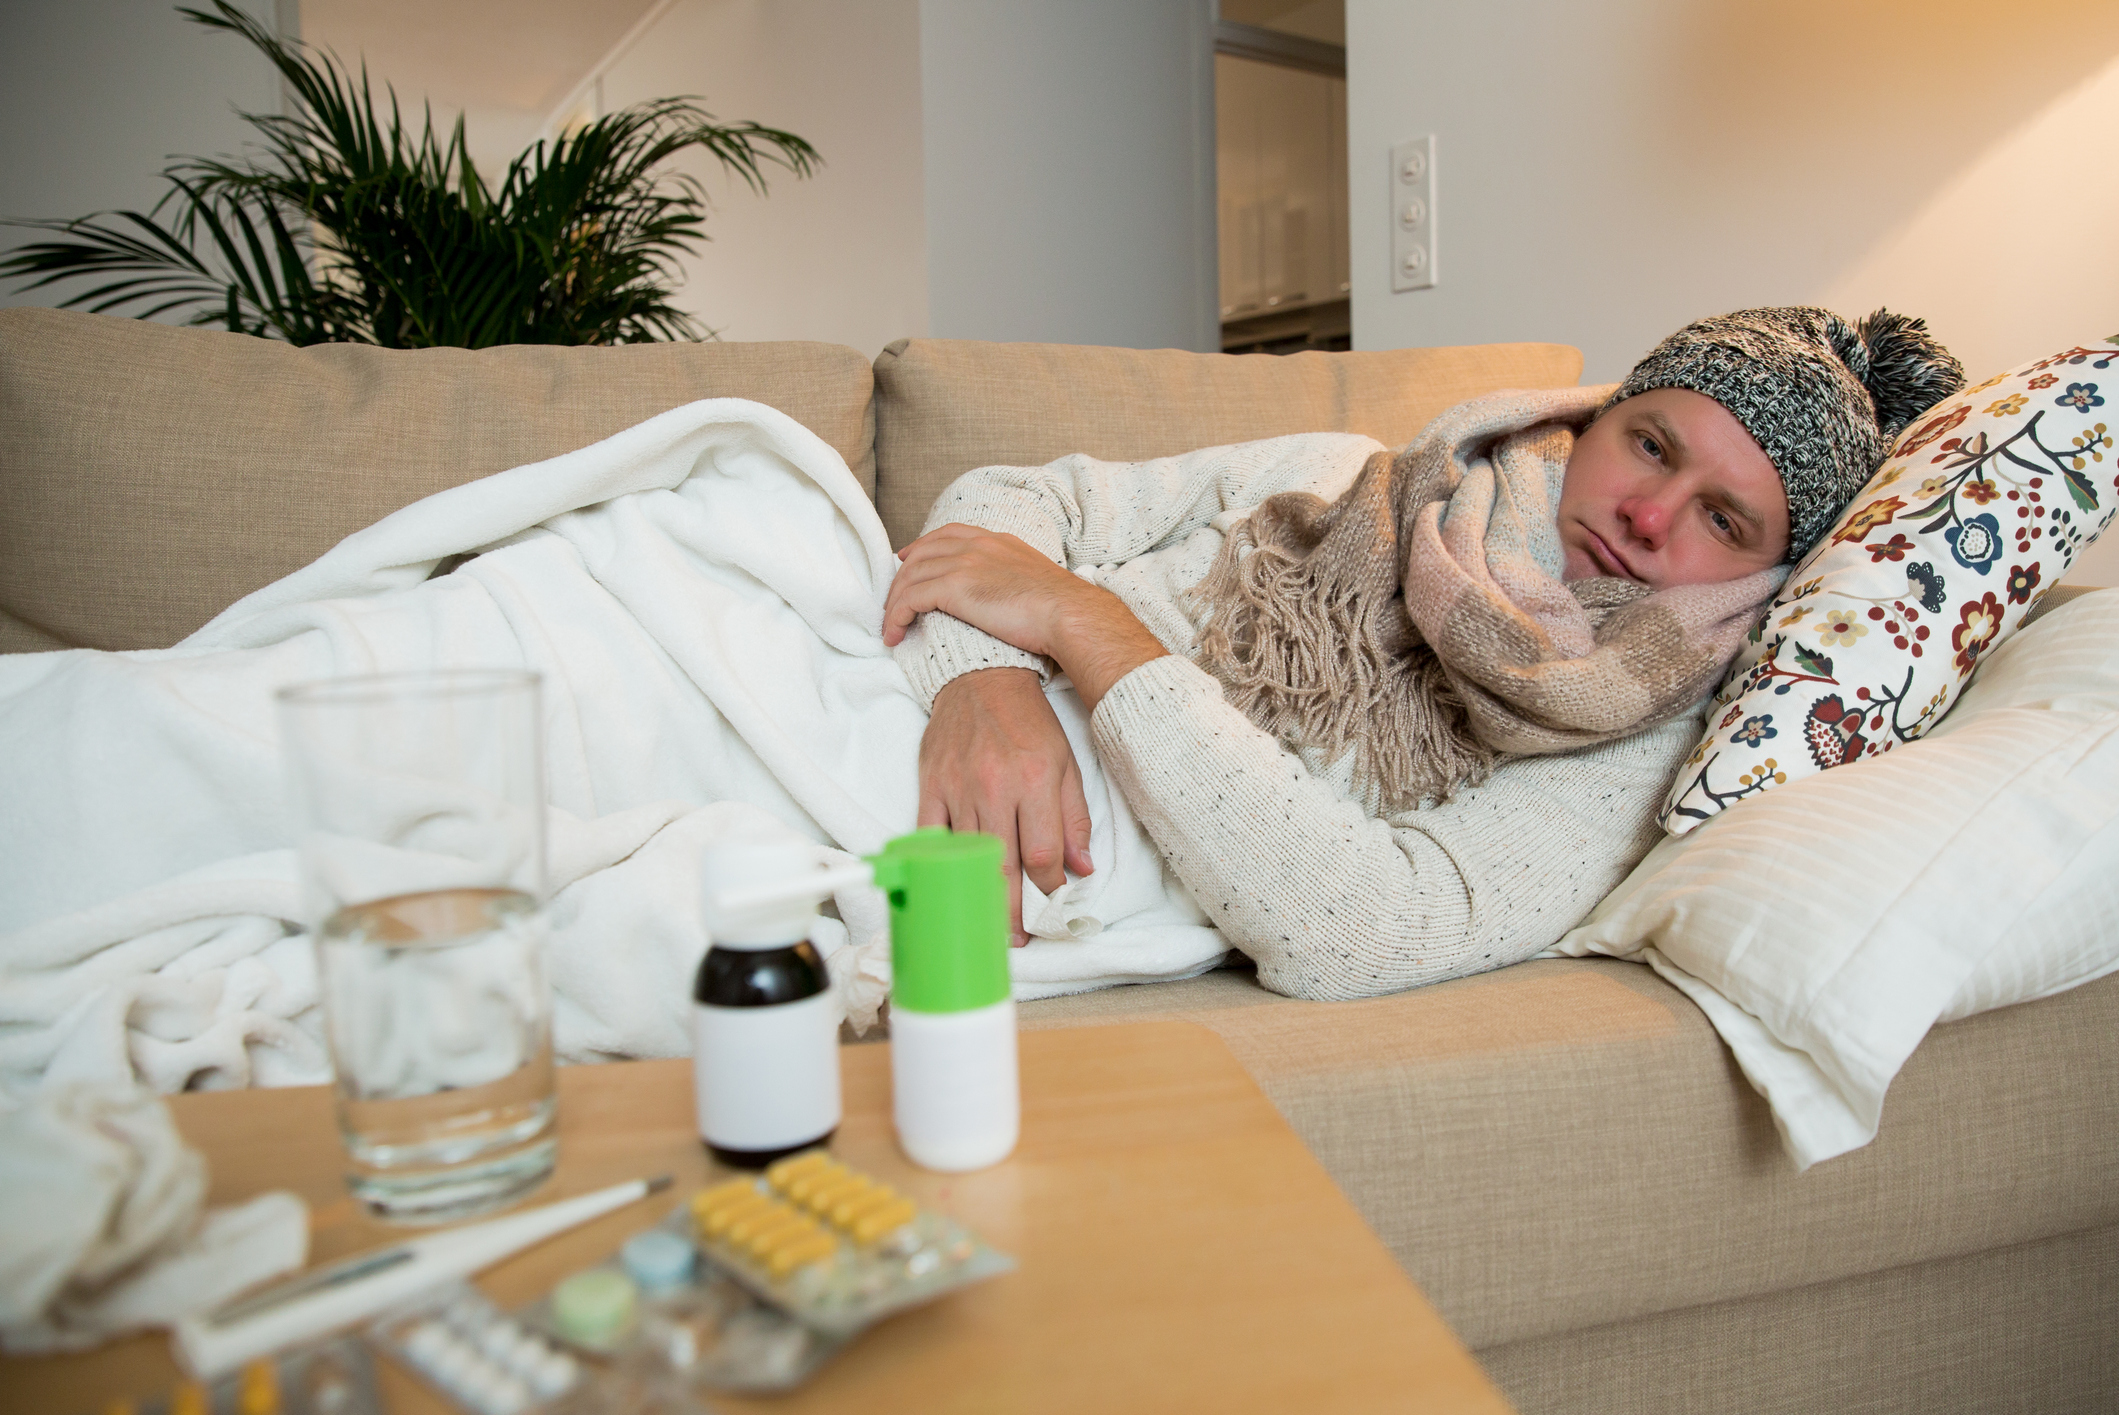 Sick man lying on couch under a blanket checking temperature. Living room with table full of medicines.